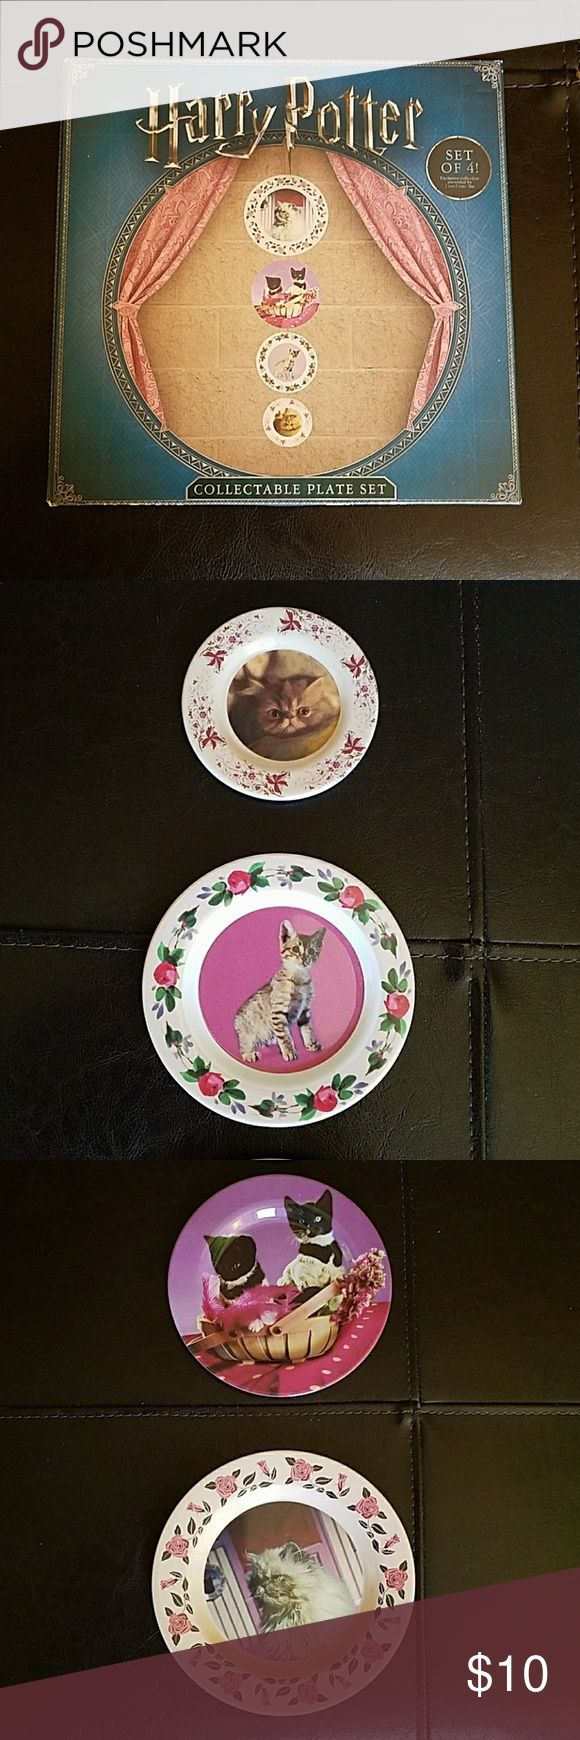 Harr Potter, Prof. Umbridge Cat Plate Set From the Loot Crate Wizarding World of Harry Potter Crate.  Box is slightly beat up but the plates have never been used. Loot Crate Other